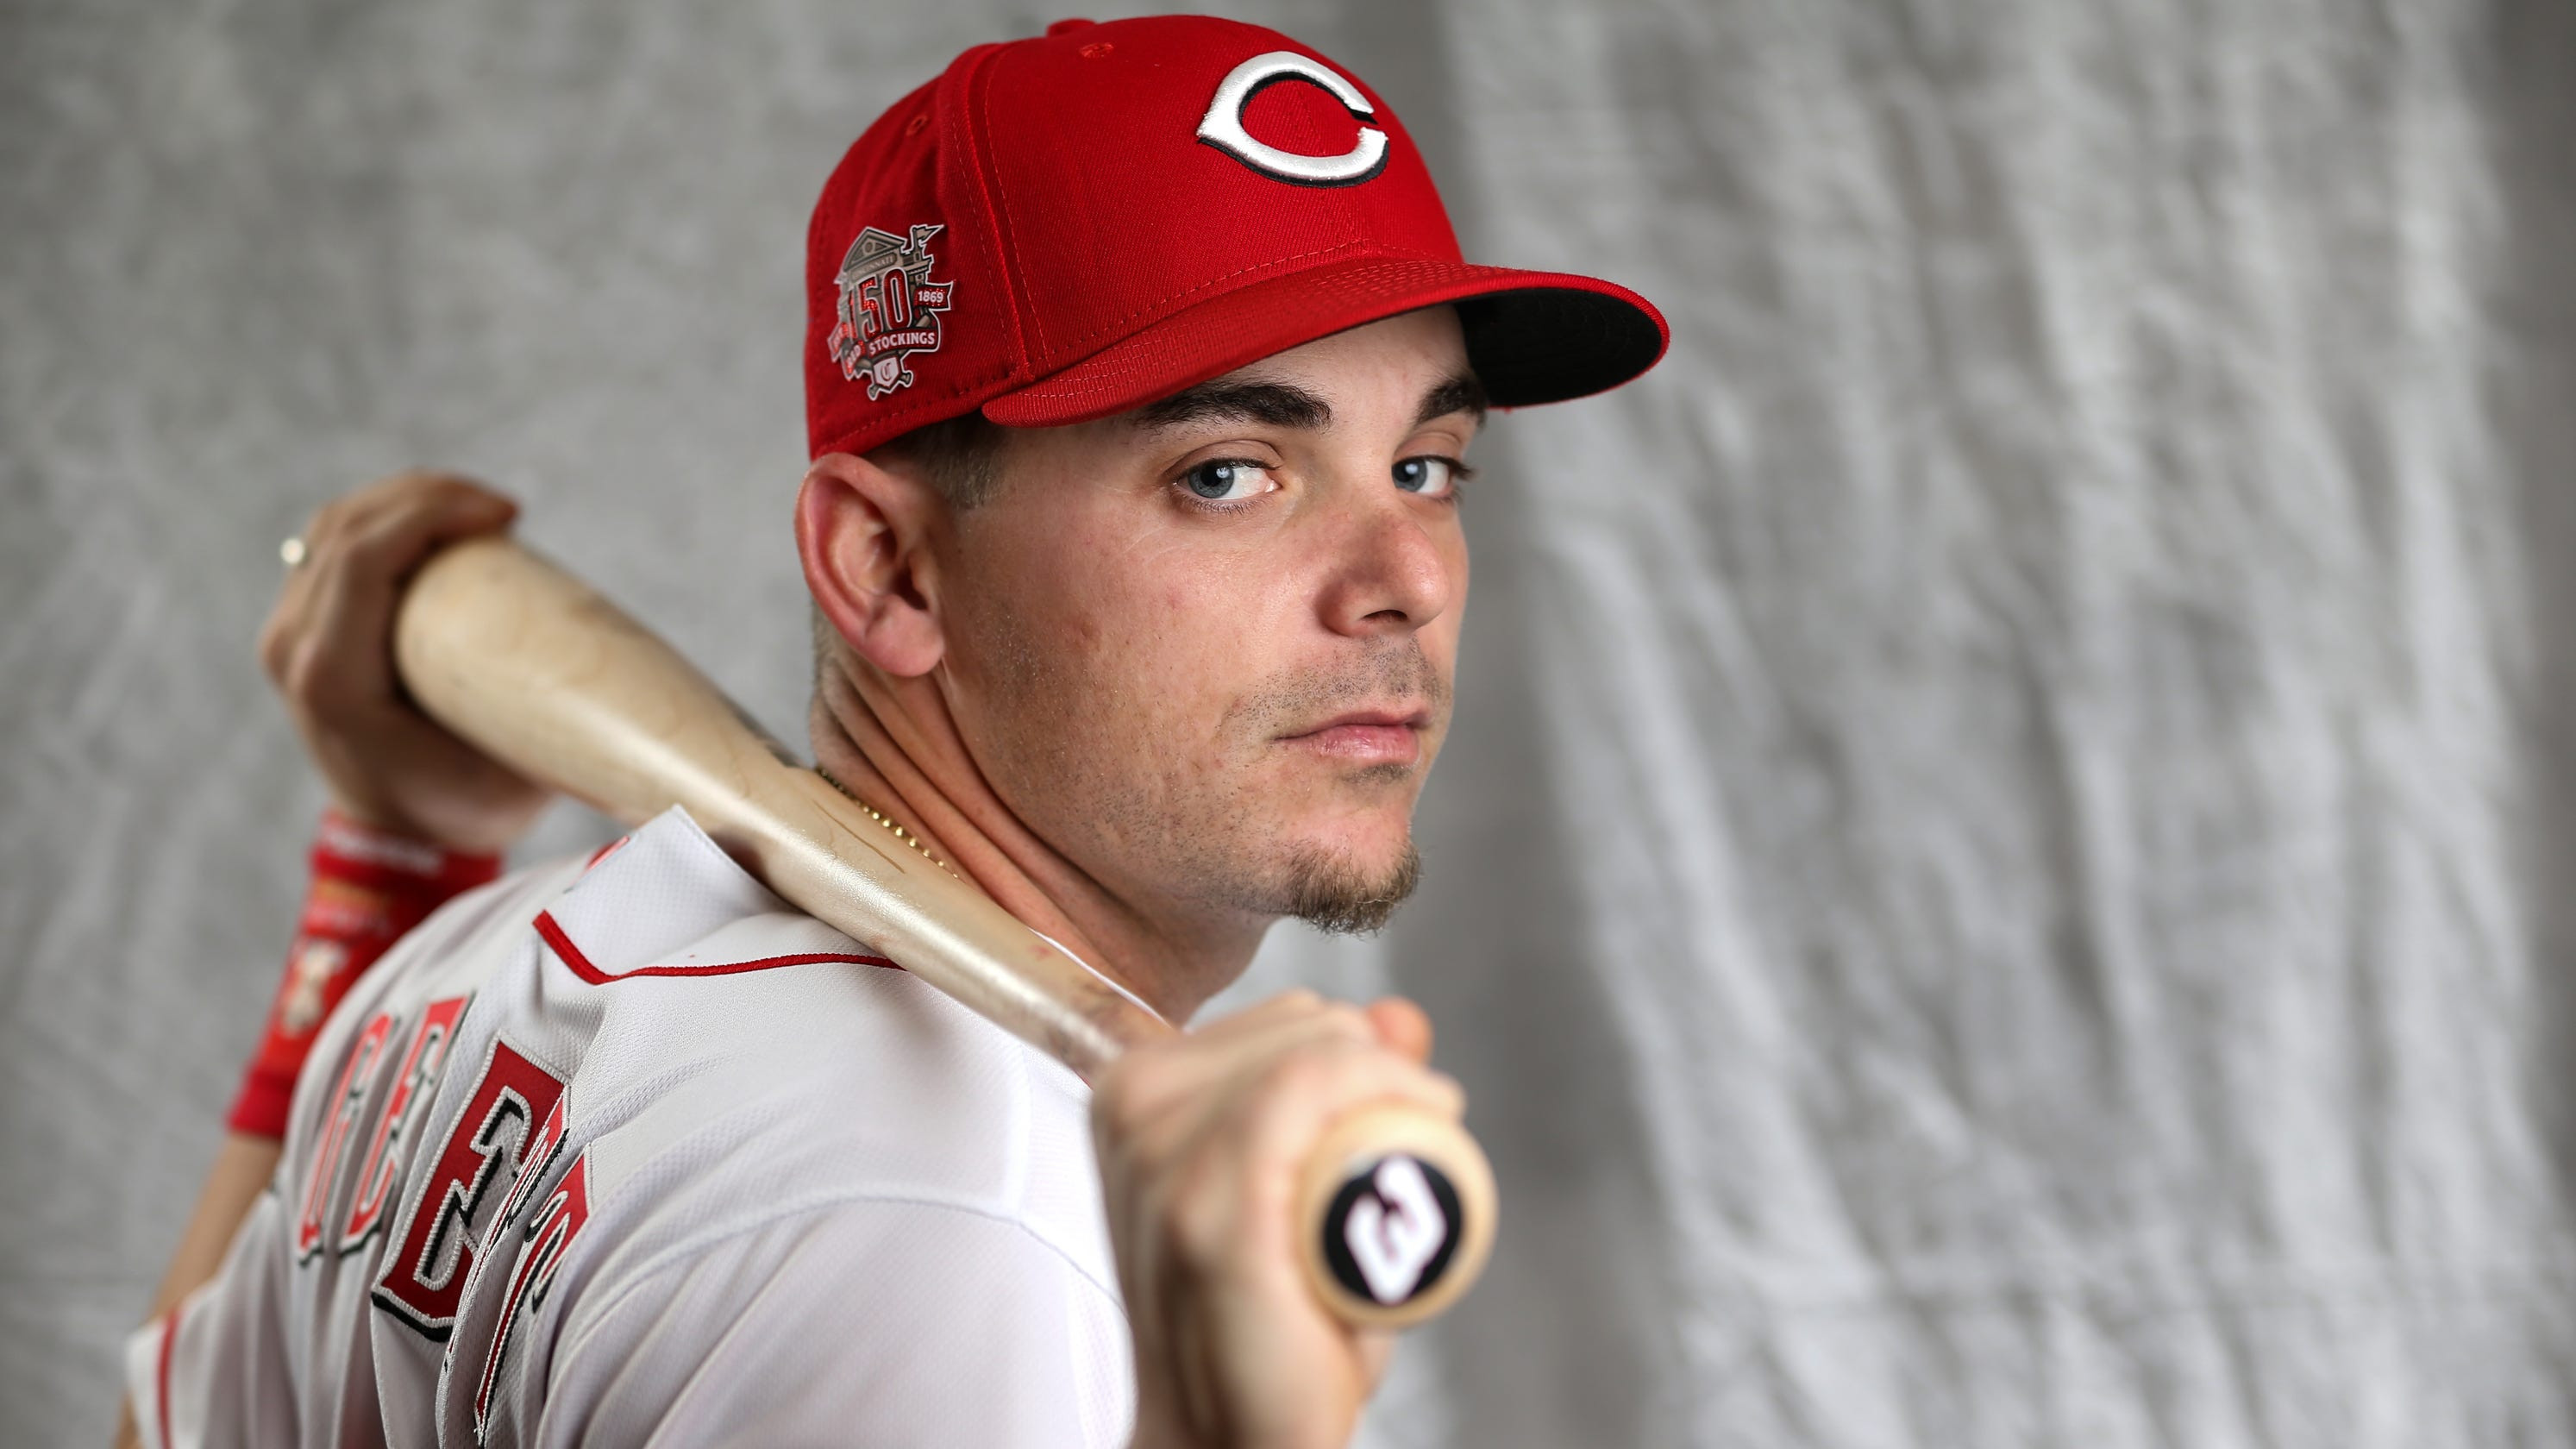 Scooter Gennett injury update: No timetable on return to Reds